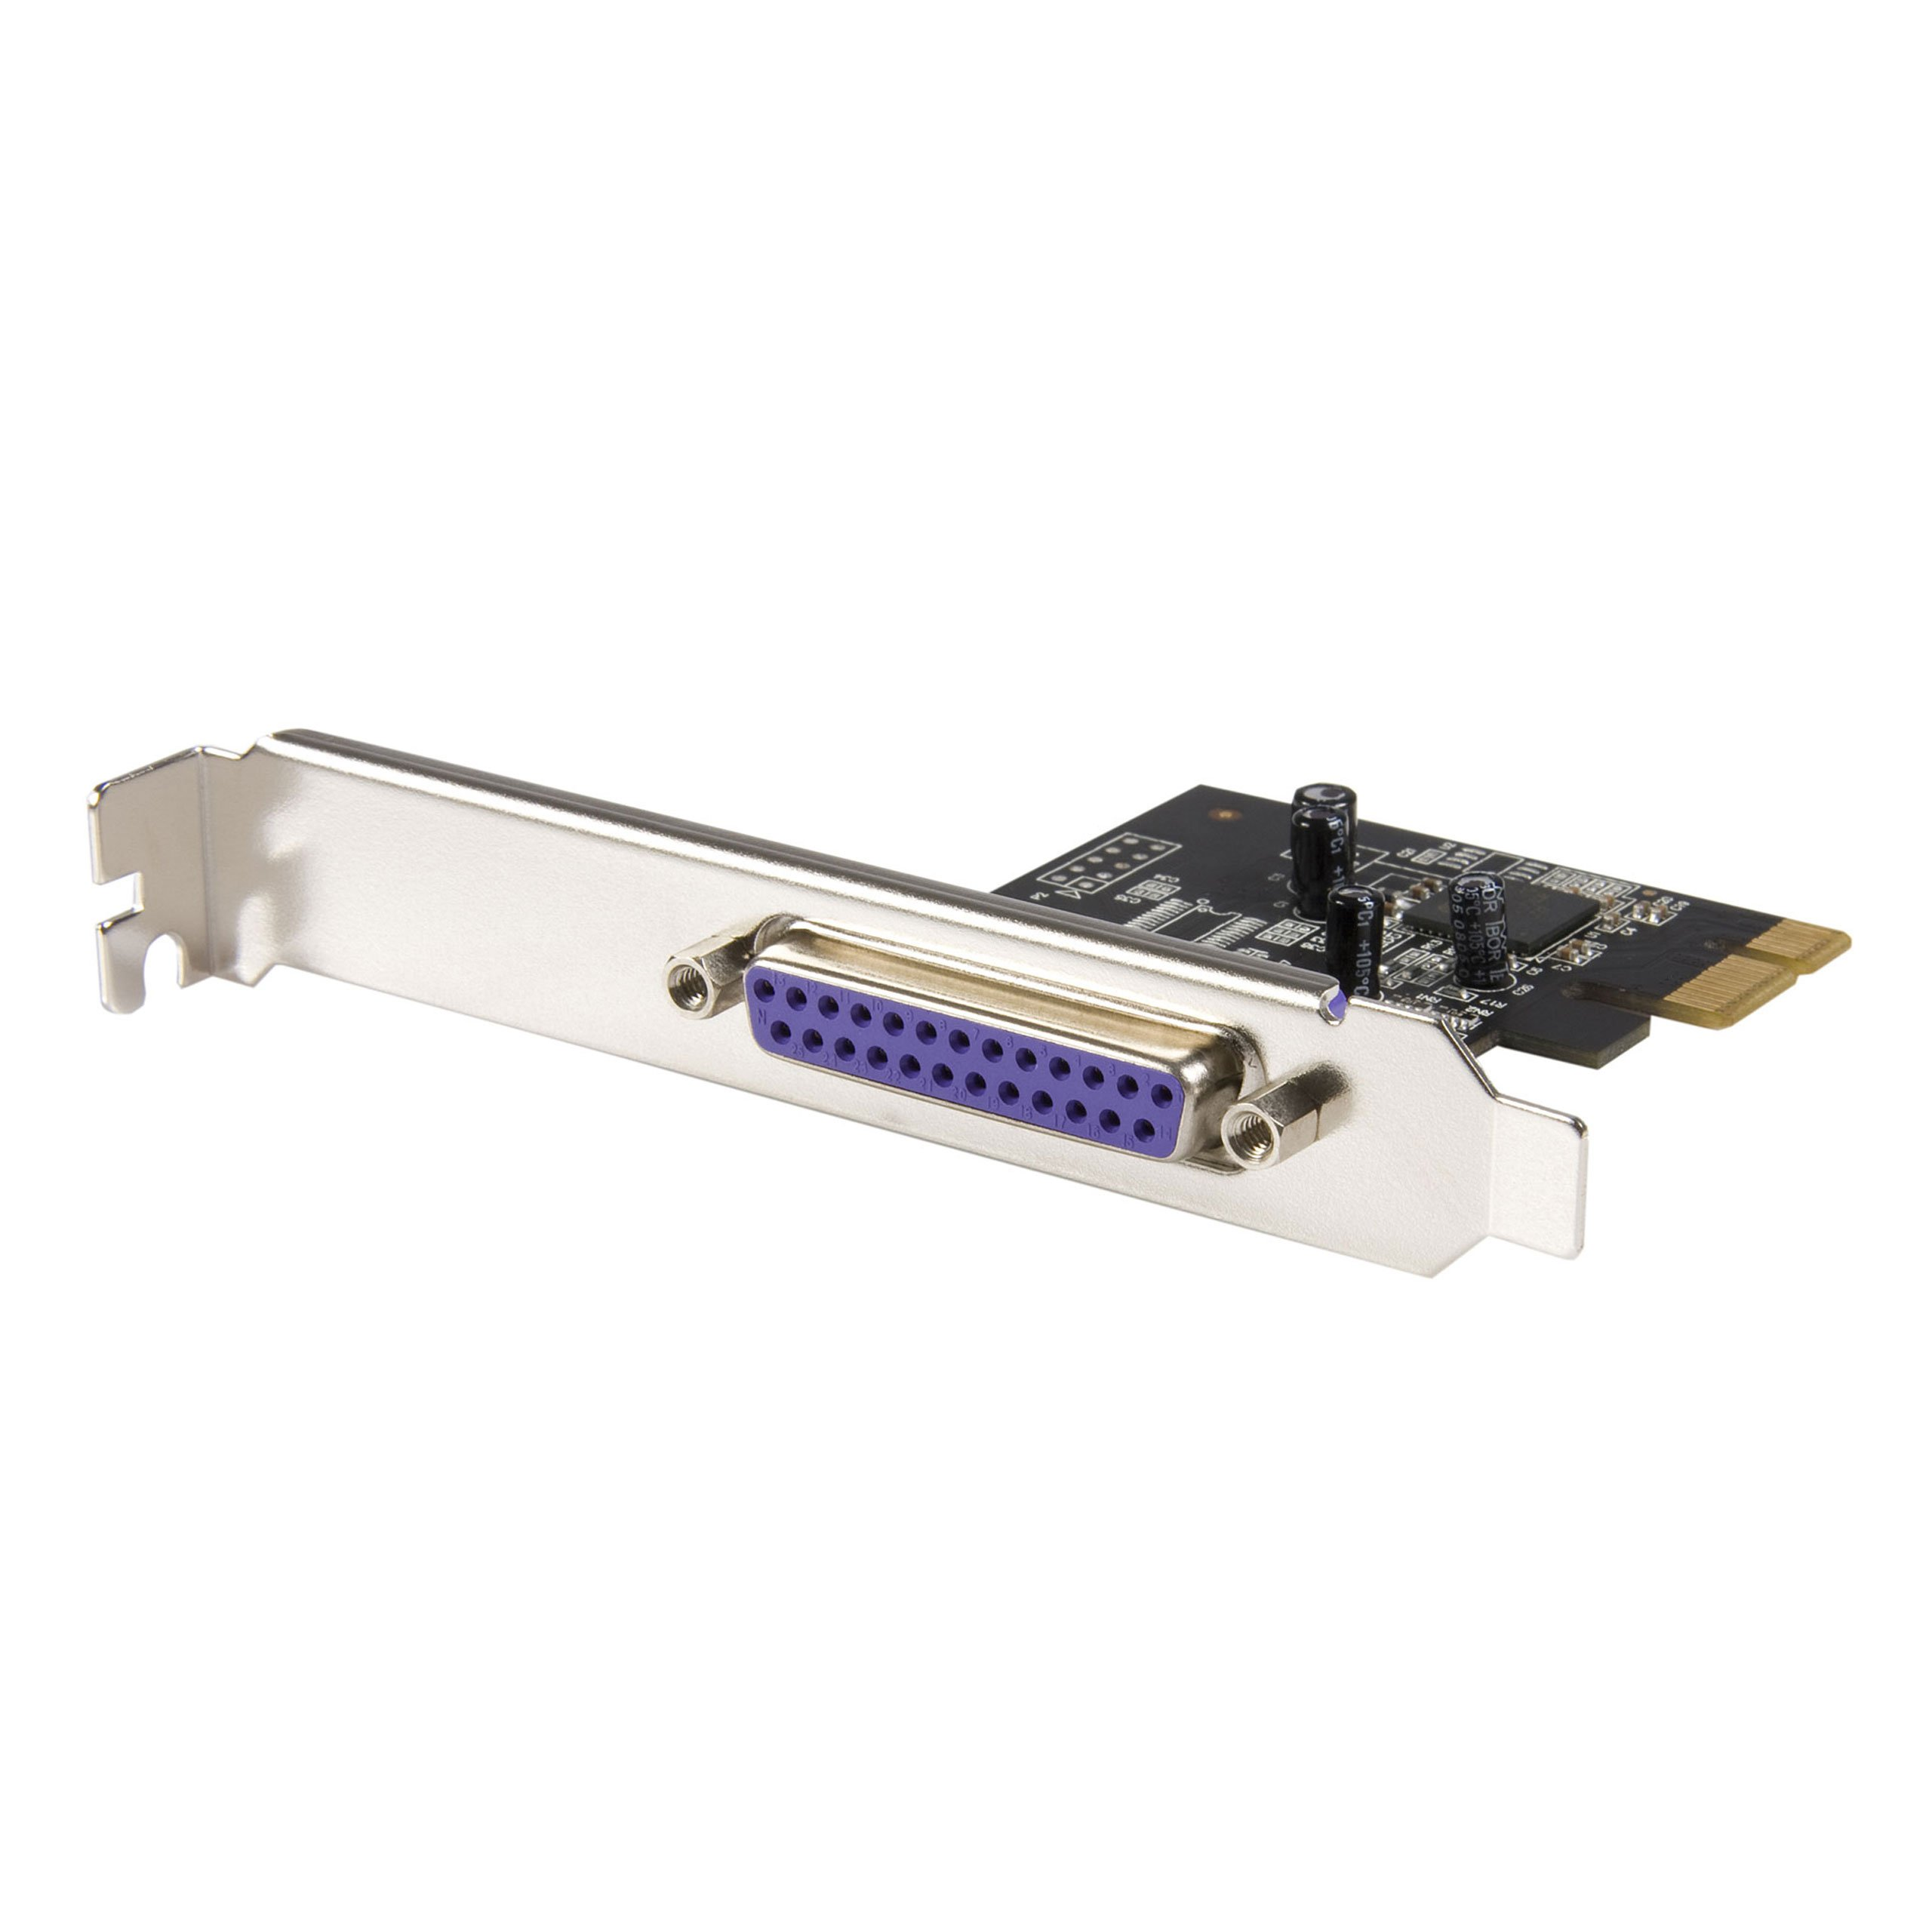 StarTech.com 1 Port PCI Express Dual Profile Parallel Adapter Card - SPP/EPP/ECP - 2x DB25 IEEE 1284 PCIe Parallel Card (PEX1P) by StarTech